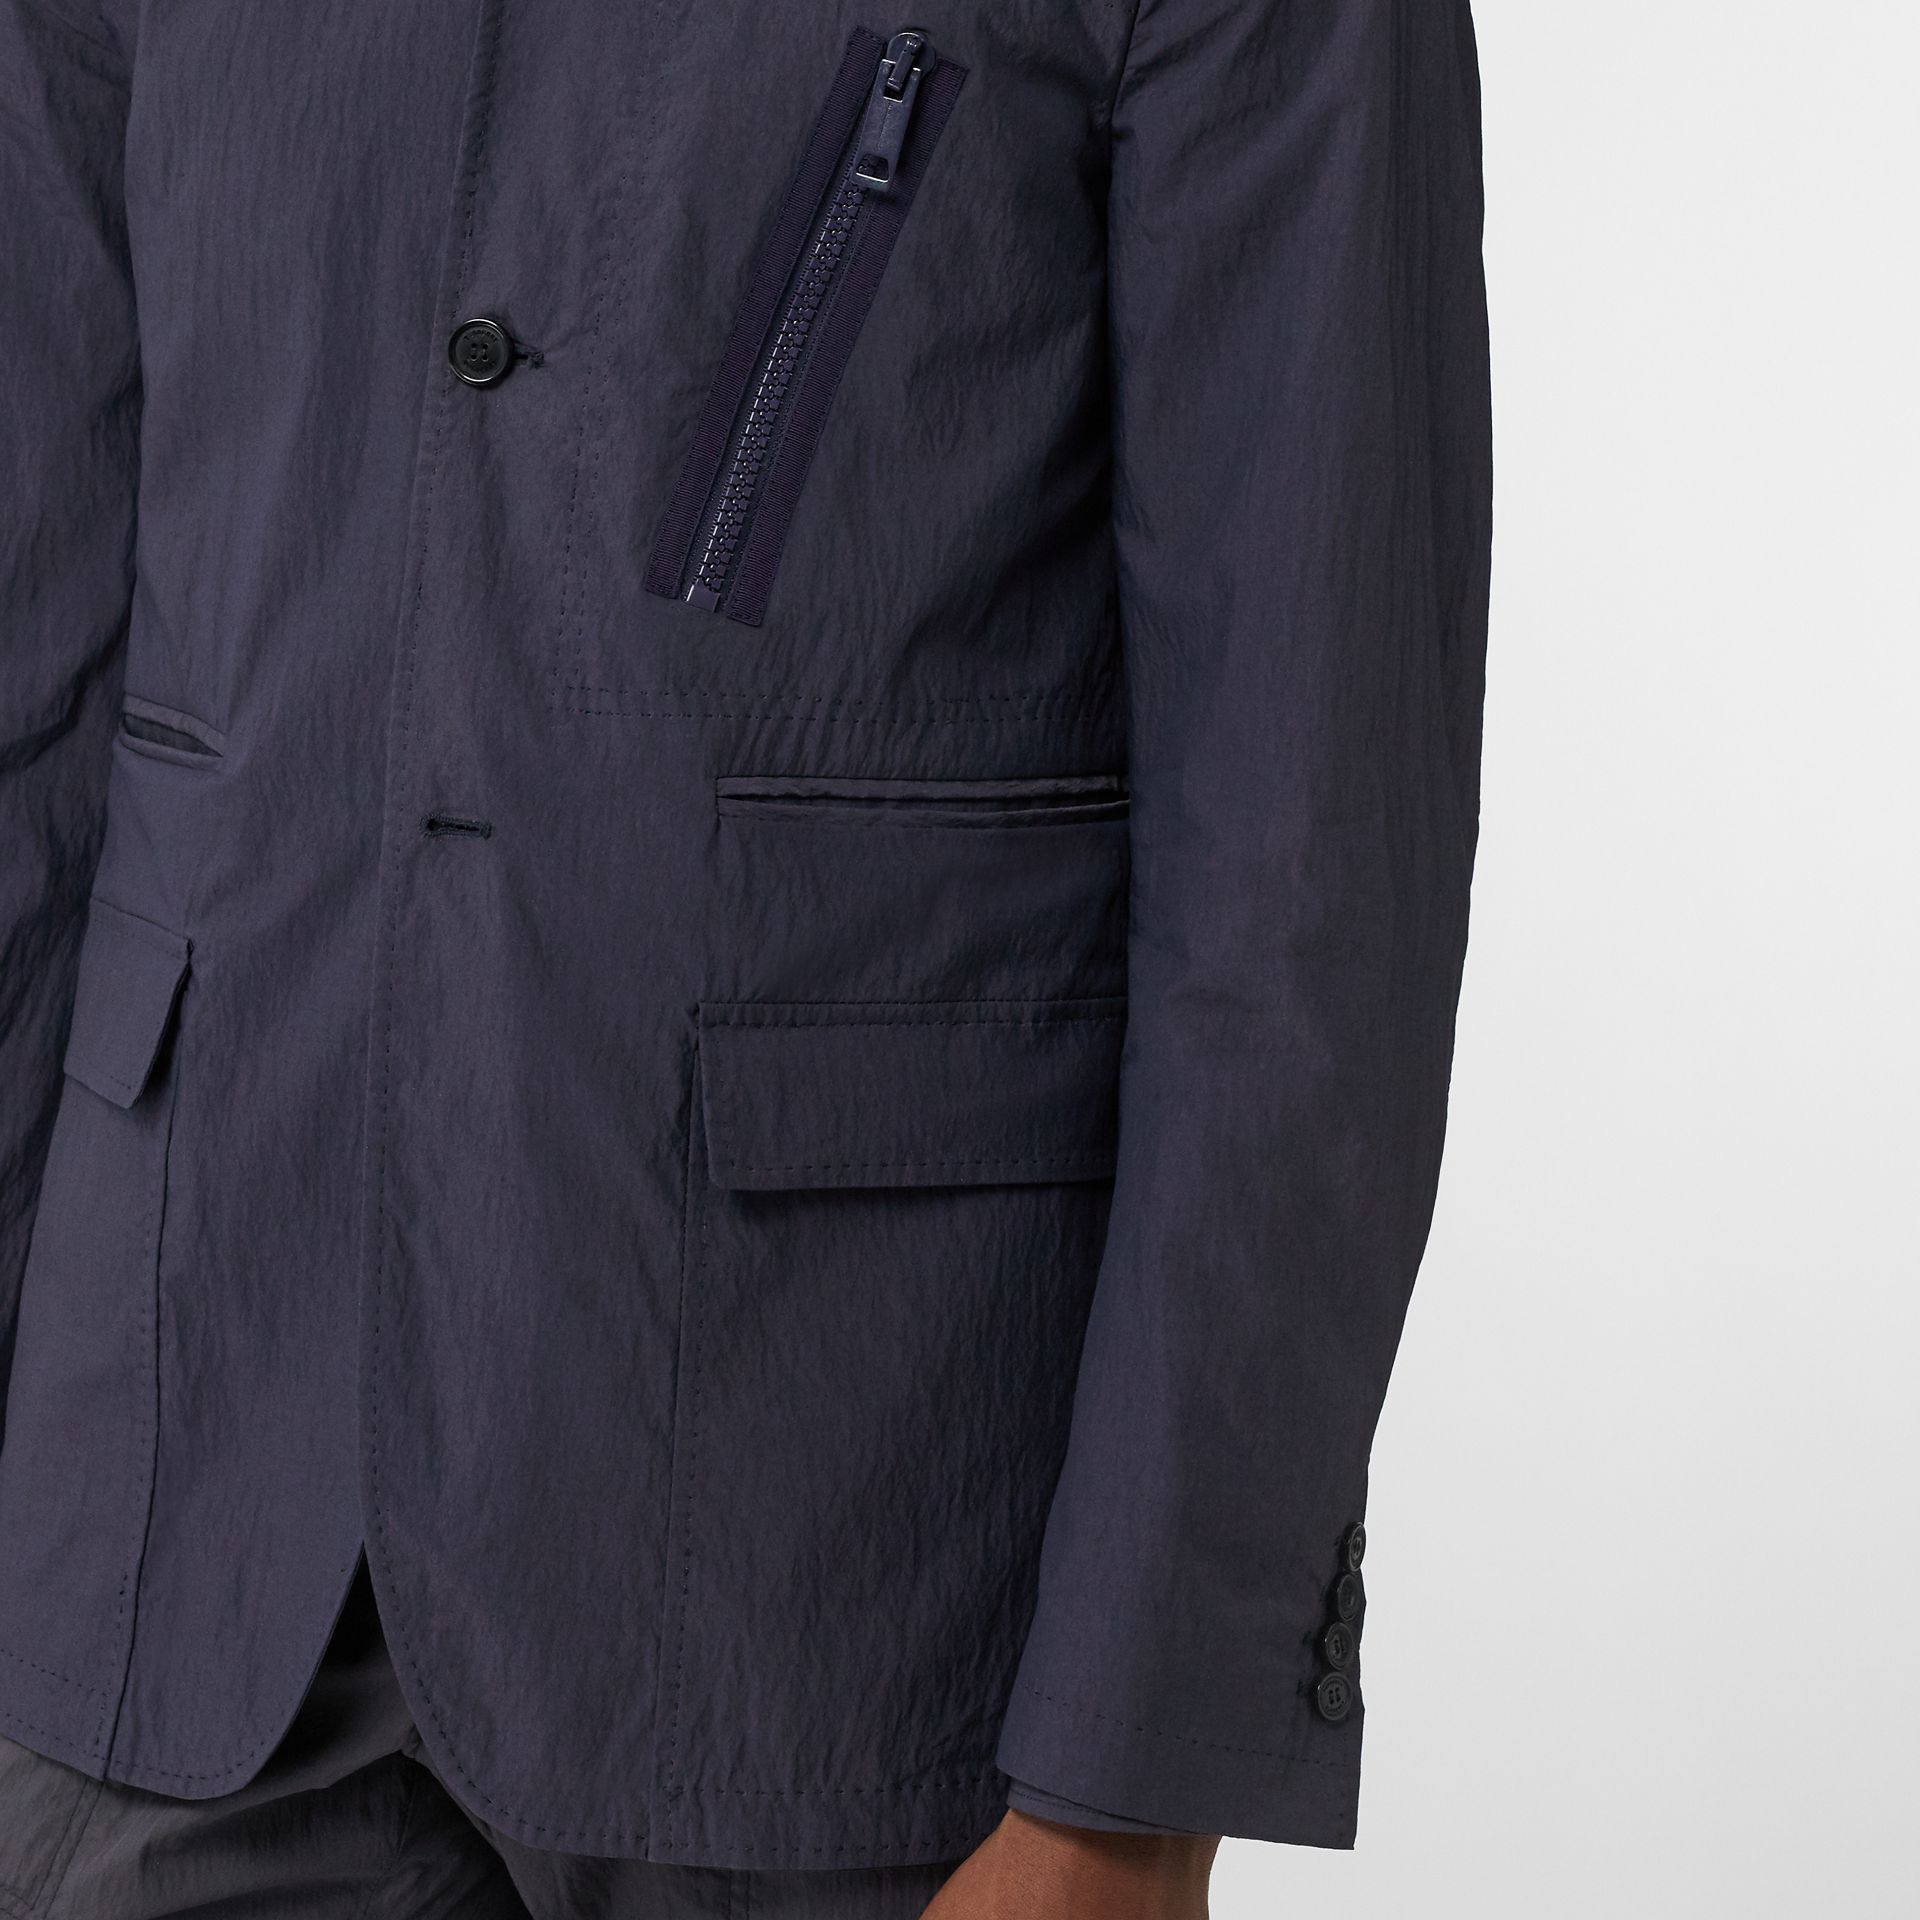 Crinkled Cotton Blend Tailored Jacket in Navy - Men | Burberry Hong Kong S.A.R - gallery image 4